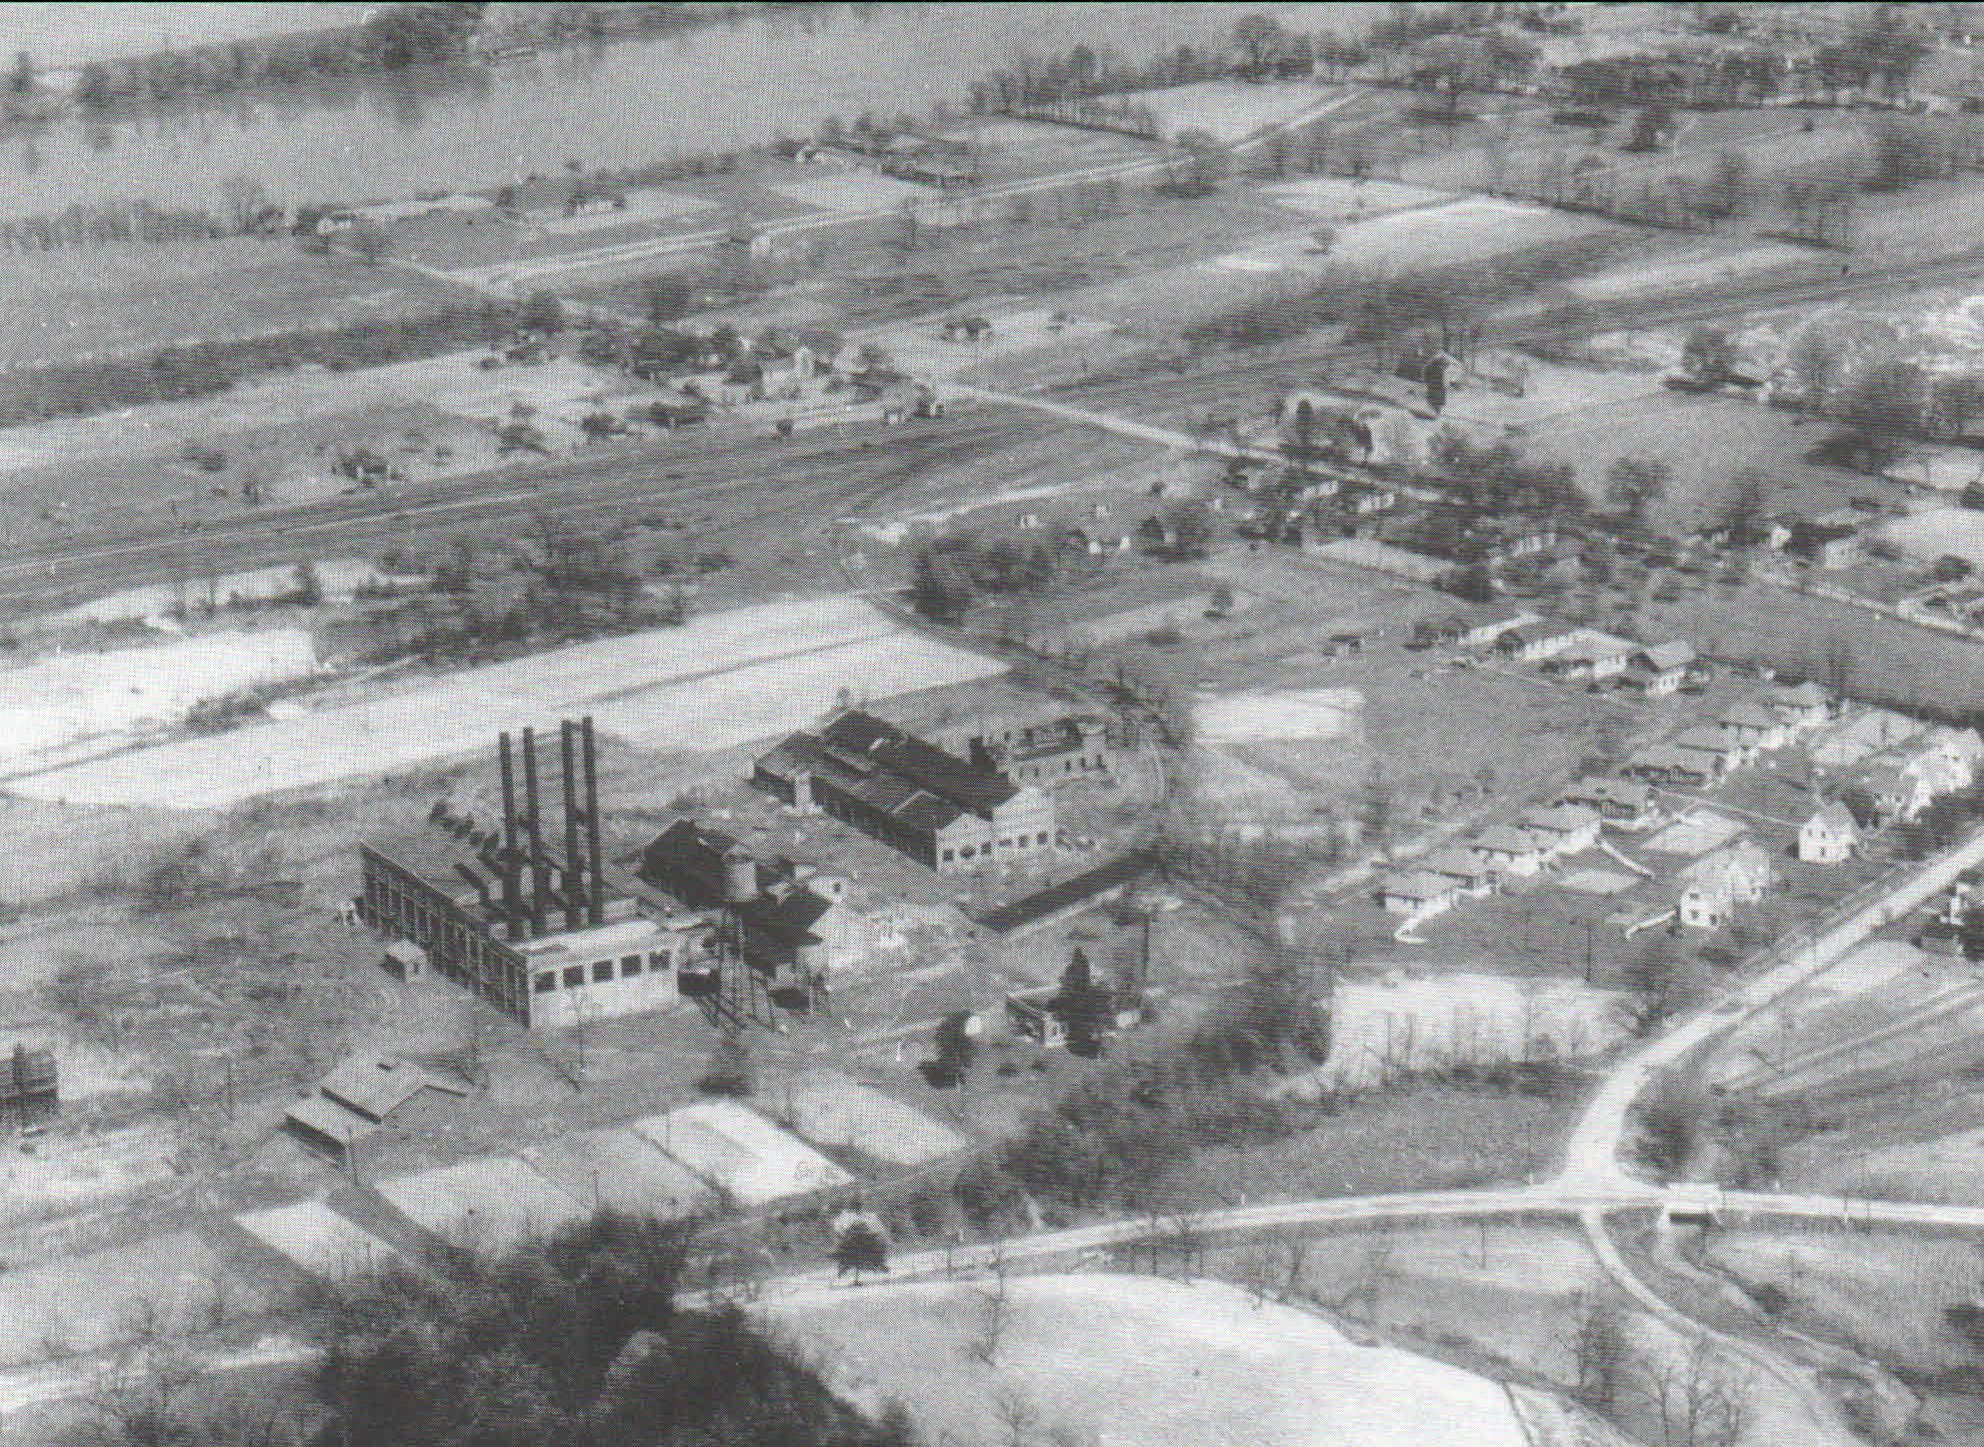 R&H Chemical and Explosives Plant built on Ft. Tackett Site. Mansion was torn down to make the plant.Foundation stones are at the St. Albans Historical Society building for a tree well.